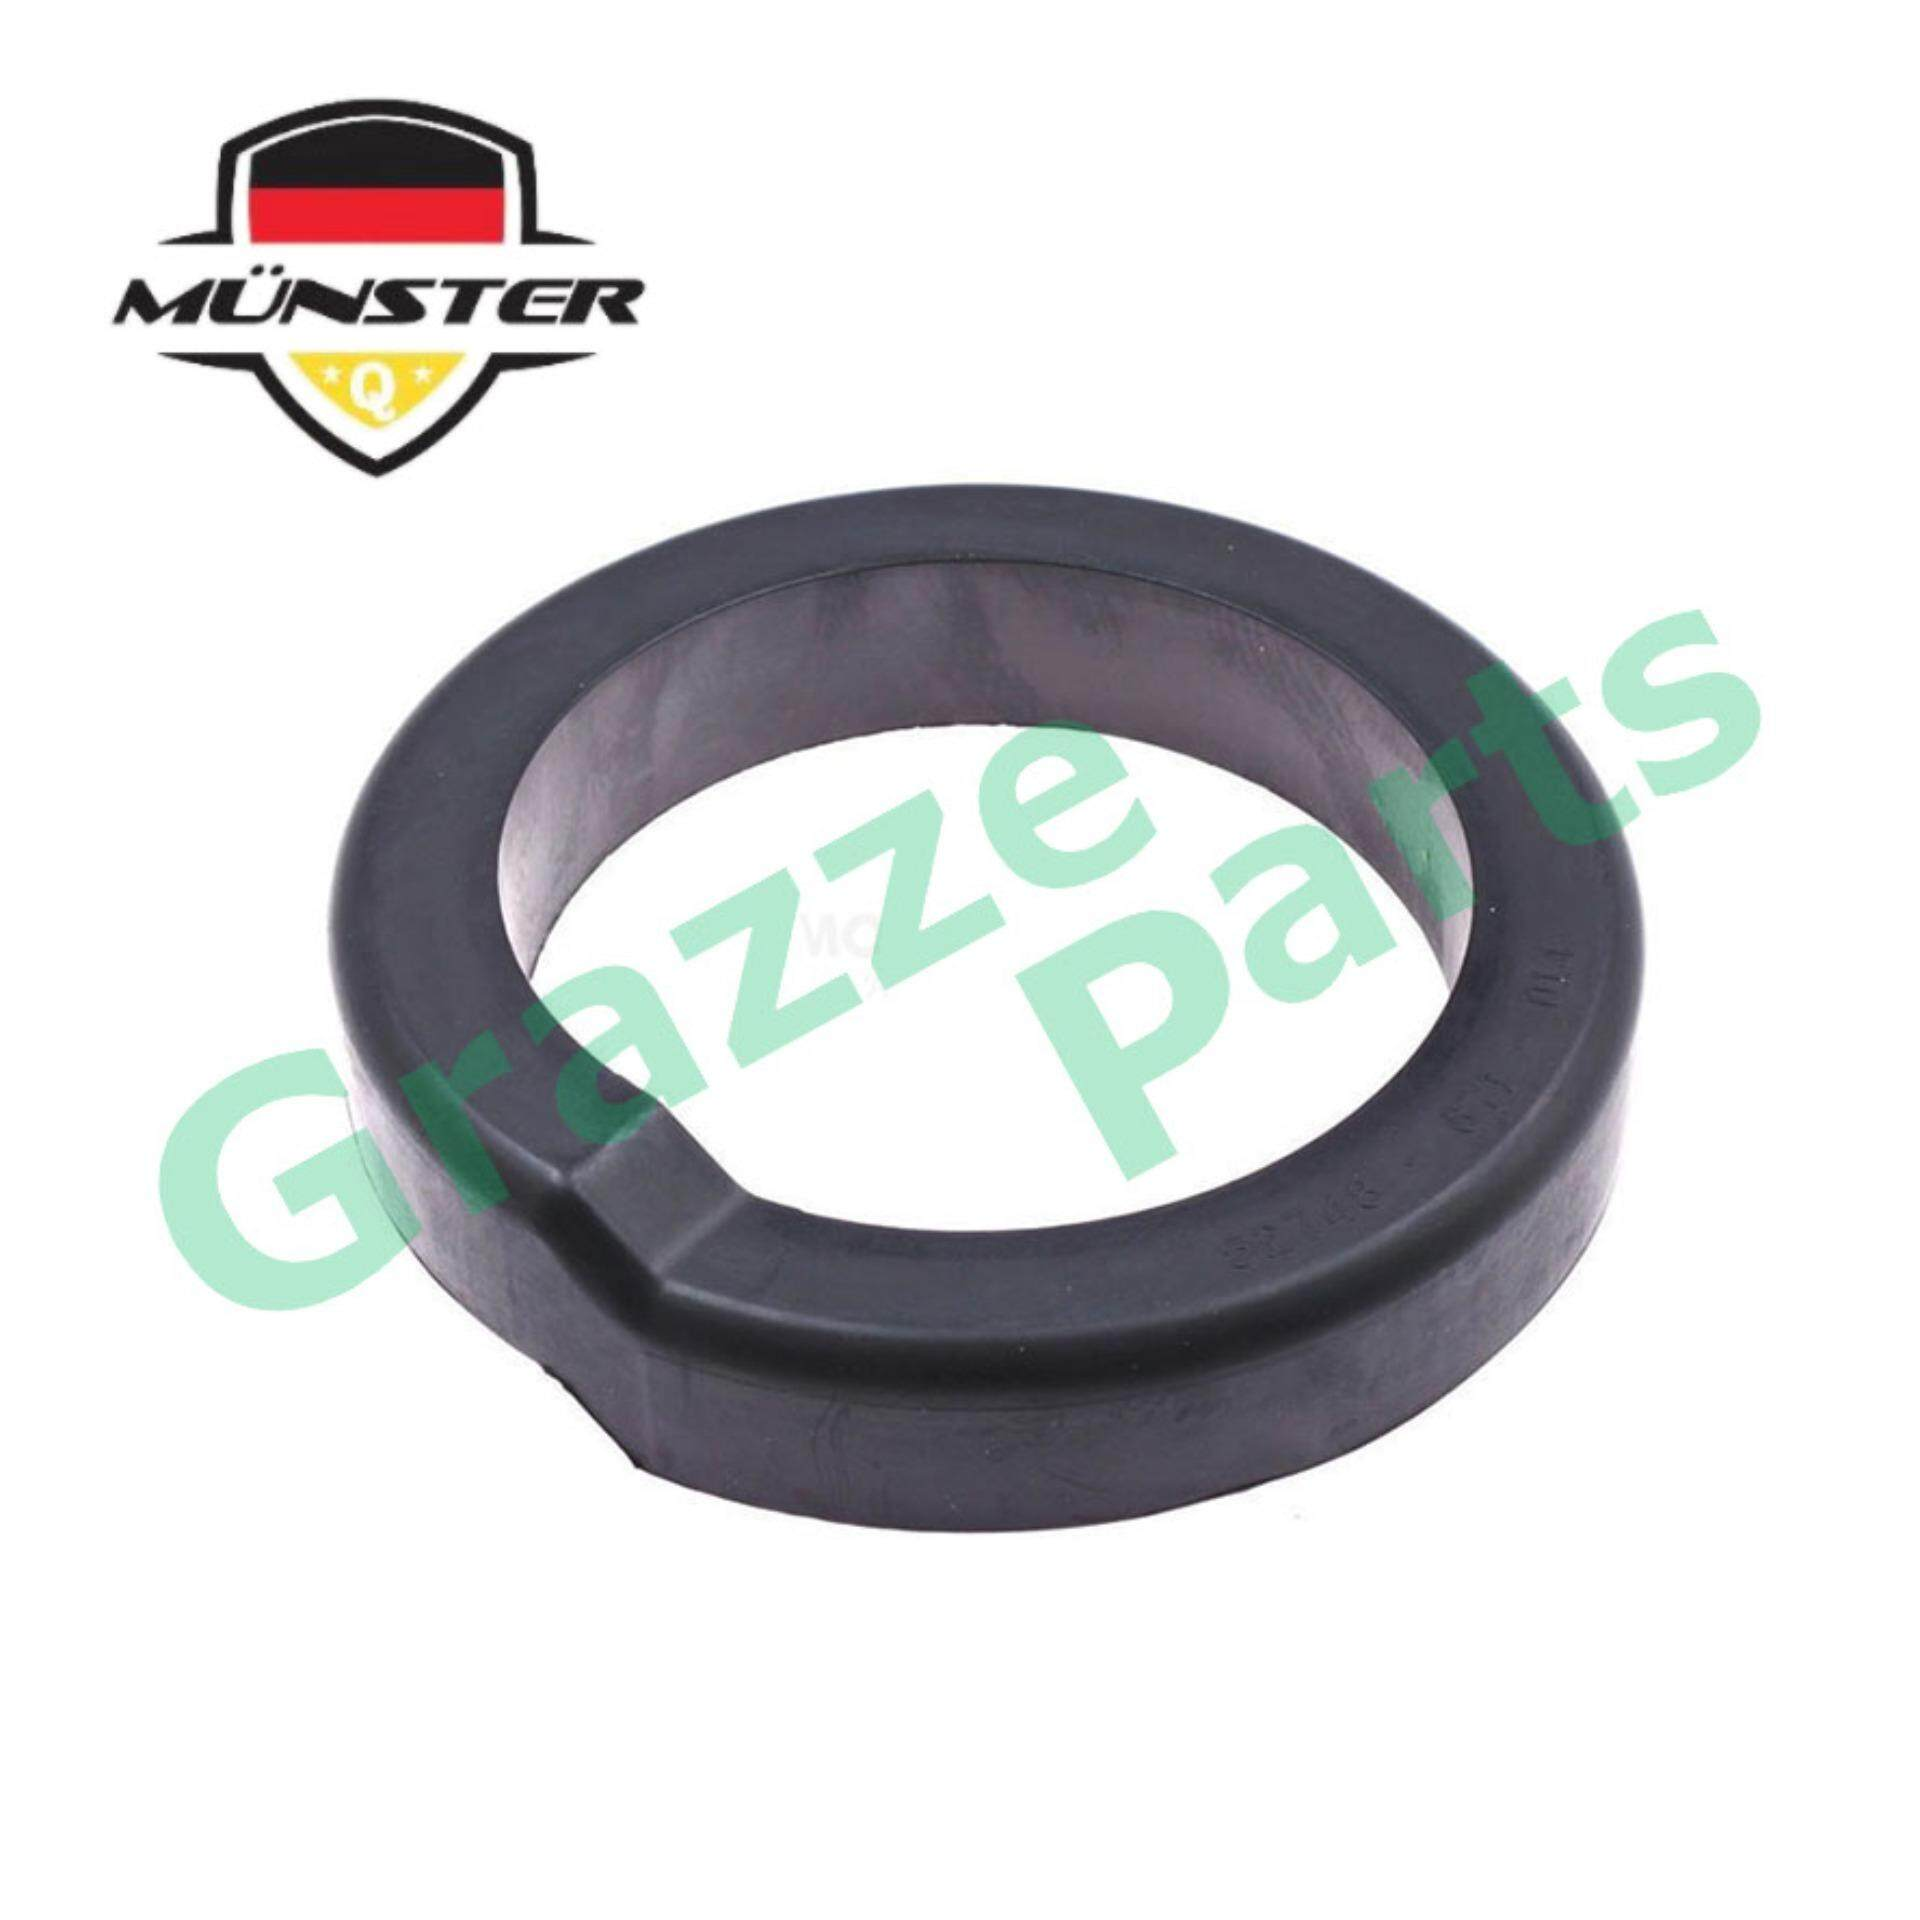 Münster Präzision Technology Coil Spring Rubber Front Lower PW892765 for Proton Gen 2 Gen2 Persona Waja Wira 1.6 Satria 1.6 Satria NEO